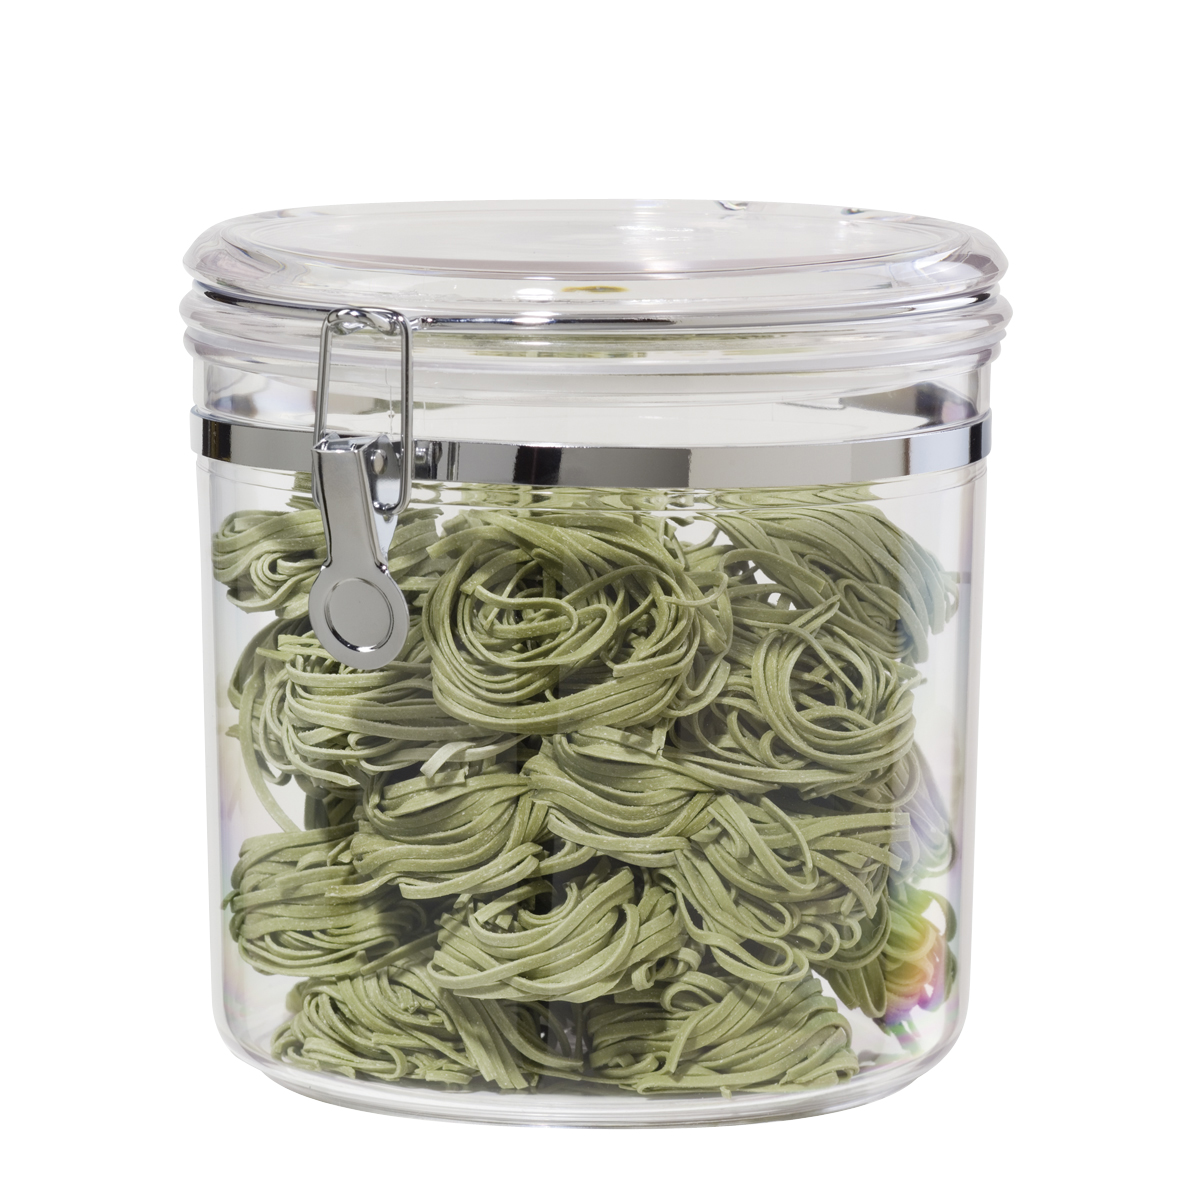 Oggi Jumbo Acrylic Airtight Canister with Clamp - 130 Ounce